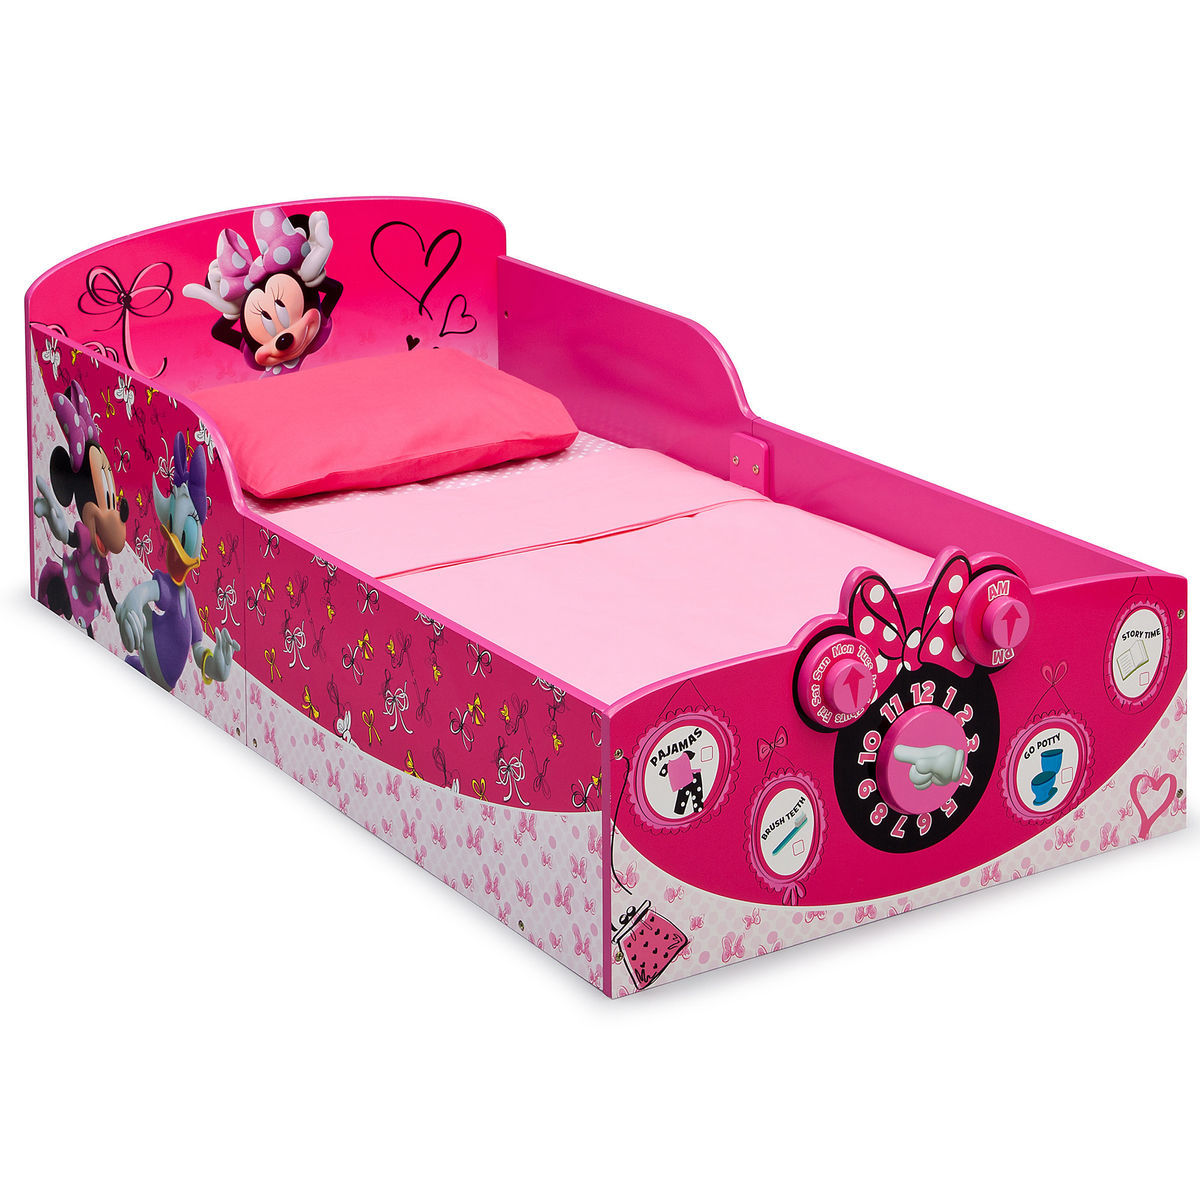 Minnie Mouse Interactive Wooden Toddler Bed Shopdisney